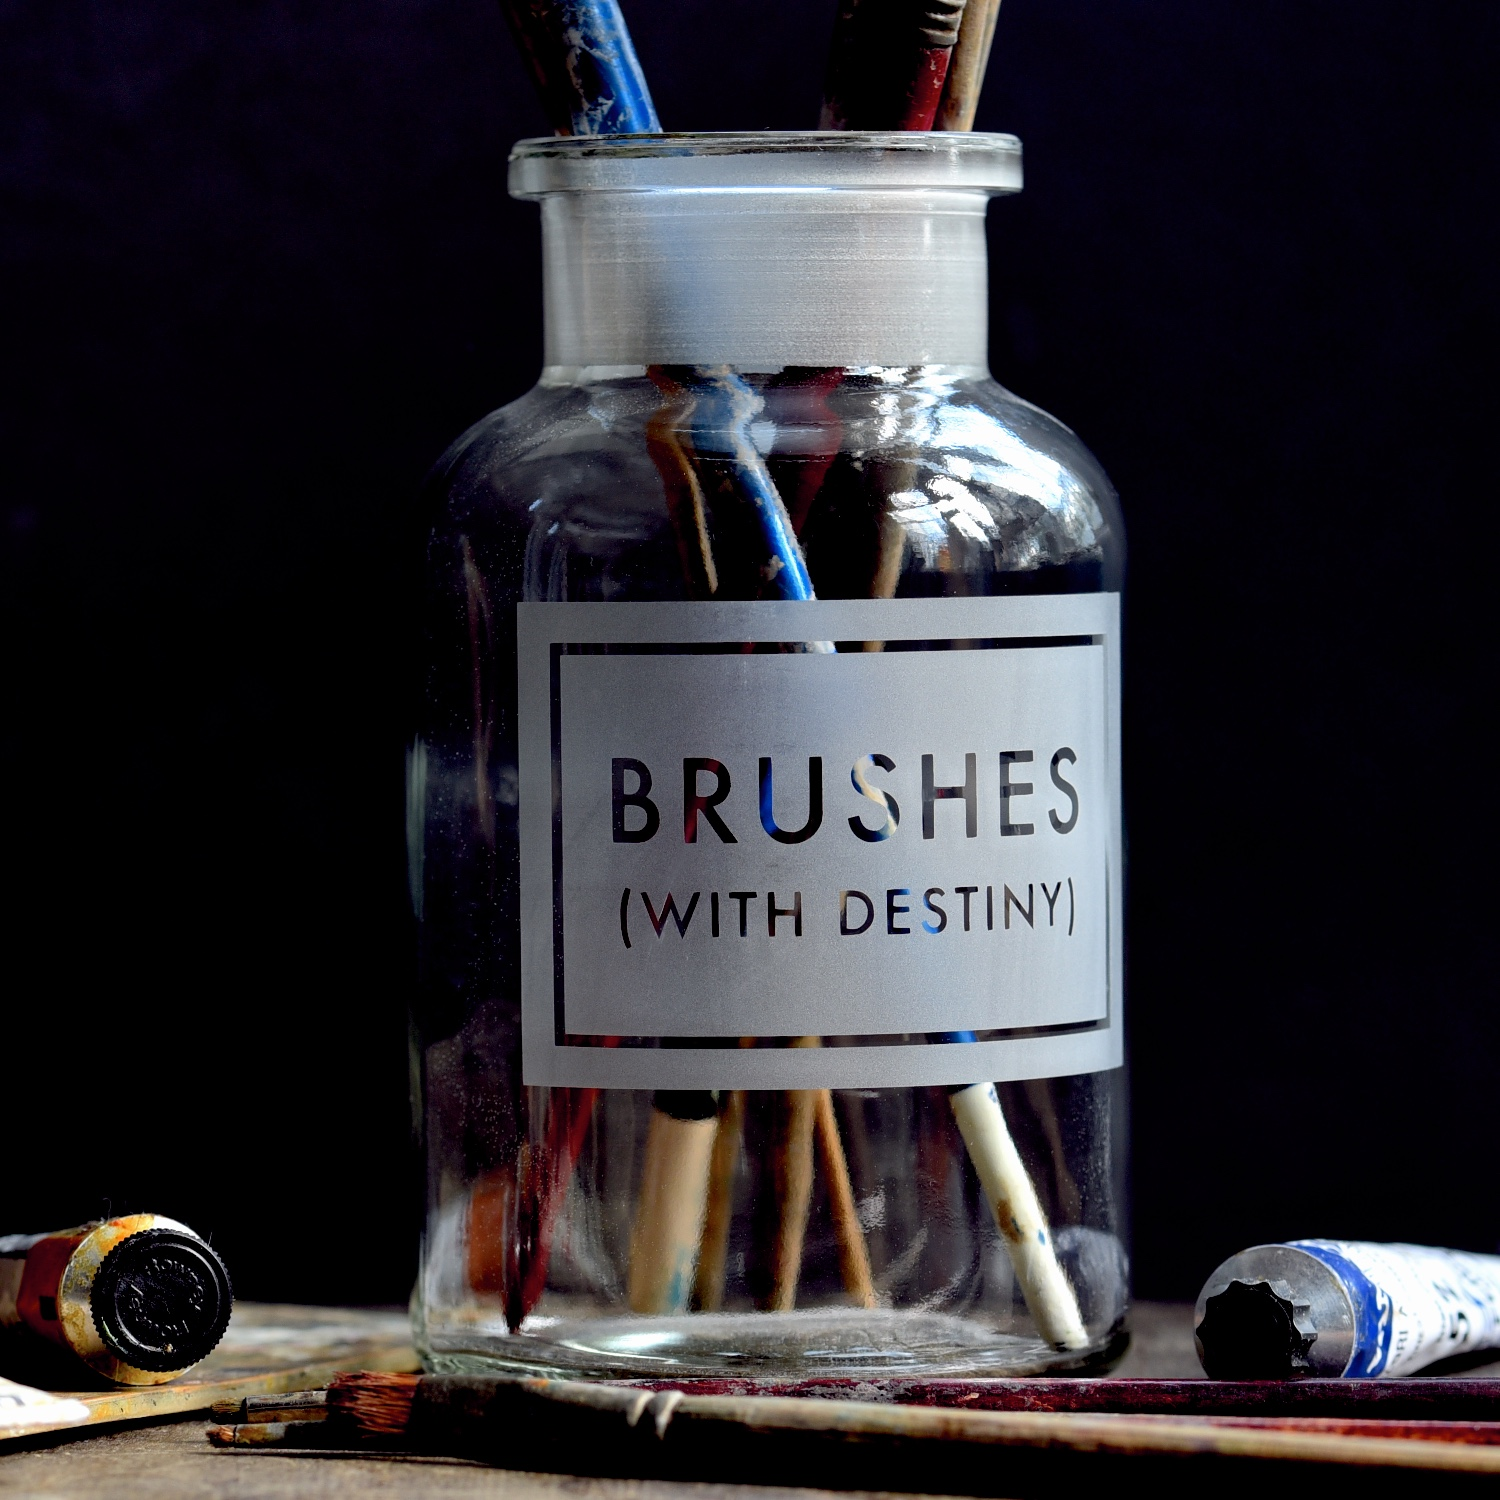 brushes-with-destiny-etched-apothecary-jar-vinegar-and-brown-paper.jpg